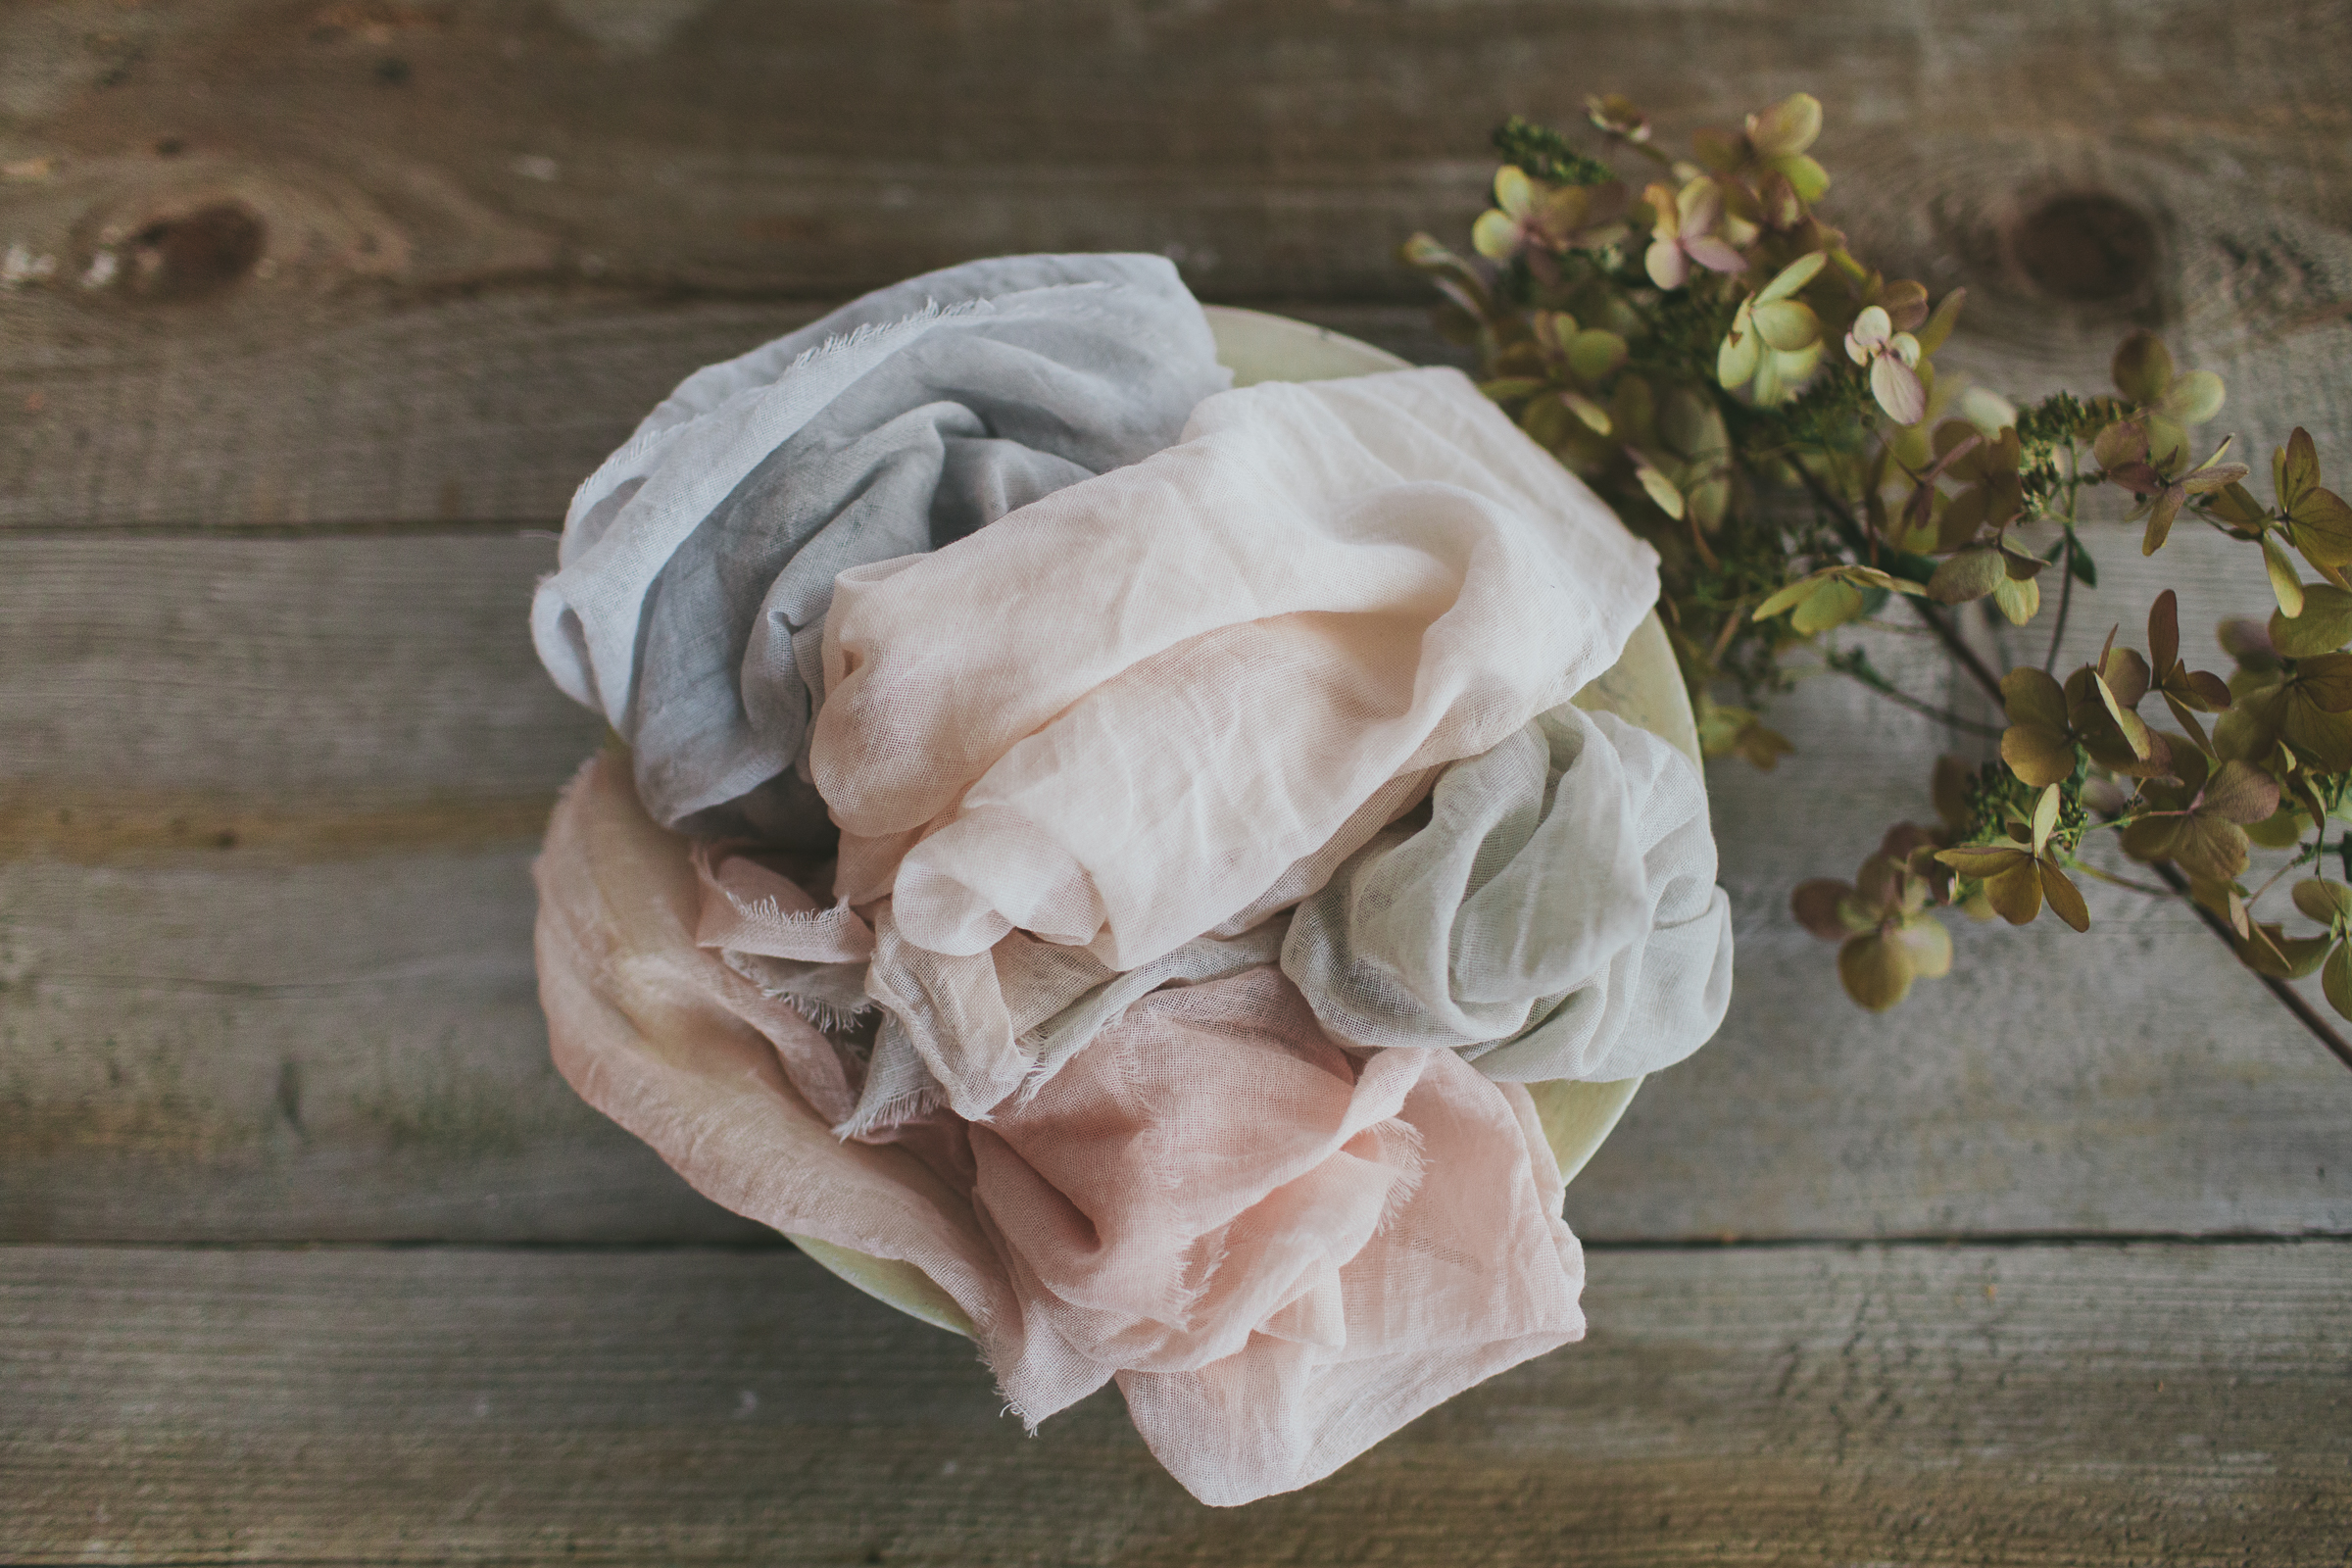 Table Linens - Our table linens are also handmade and hand dyed.Cotton dinner napkins and silk chiffon table runners, hand-dyed with all natural colours and non-toxic processes, they are the perfect artisanal touch to a wedding table, styled shoot or special celebration.